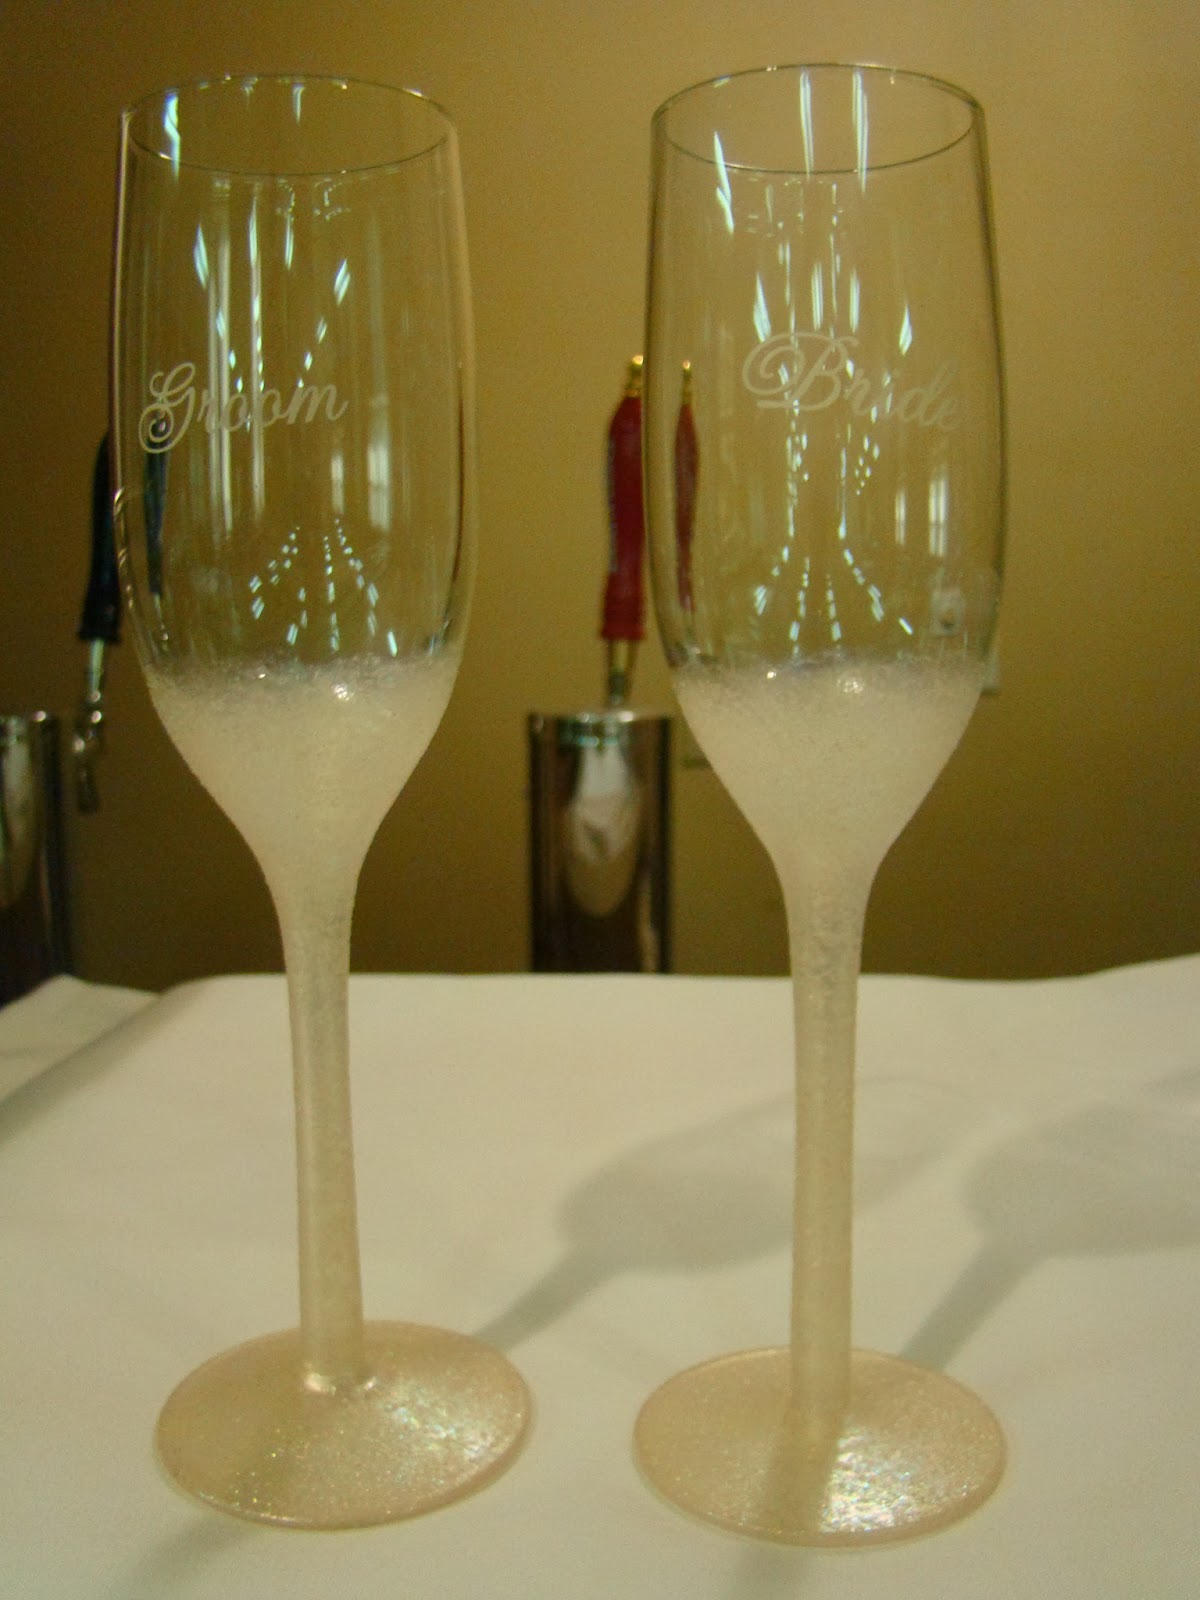 Painted Bride and Groom Glasses